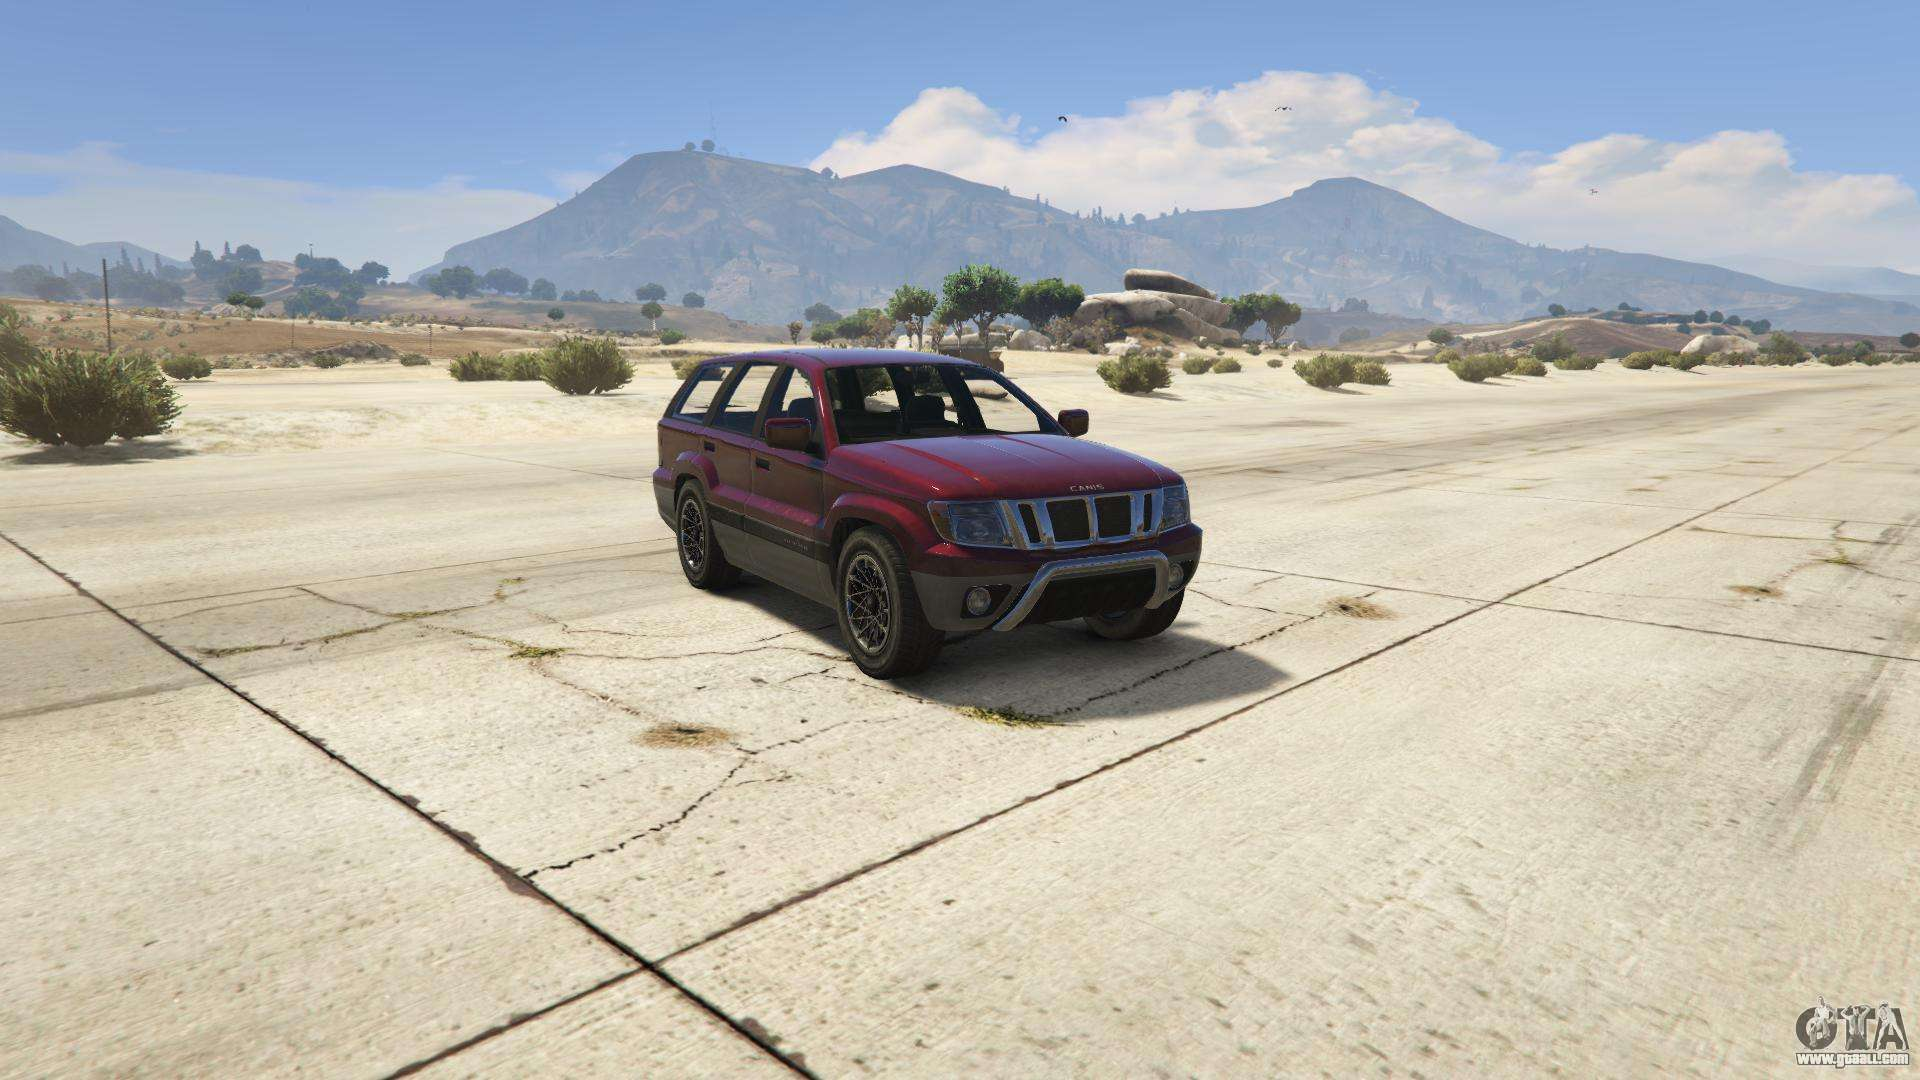 GTA 5 Canis Seminole - front view